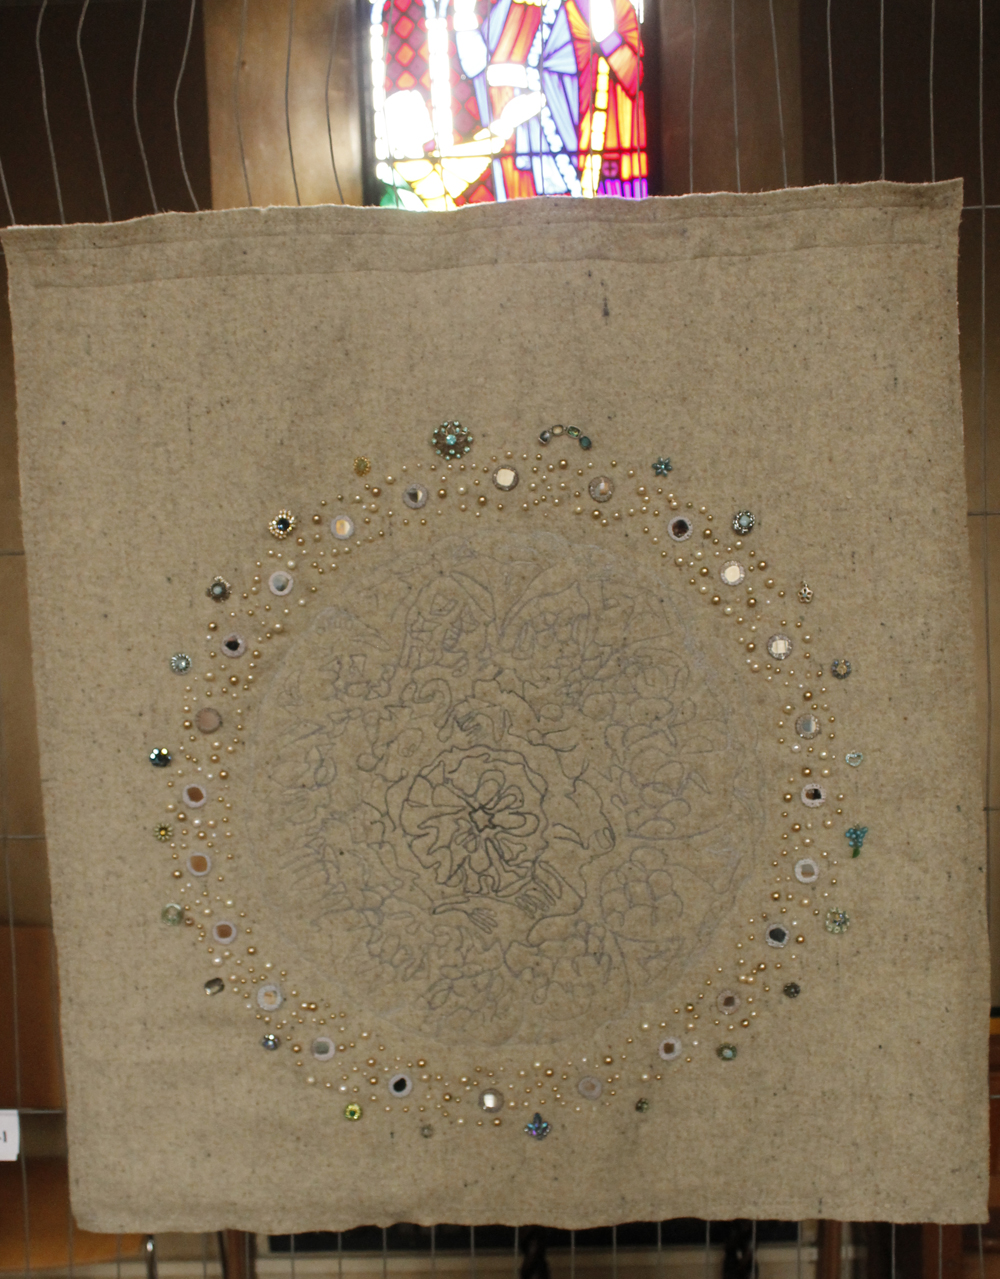 Star Gazing Embroidery and jewels